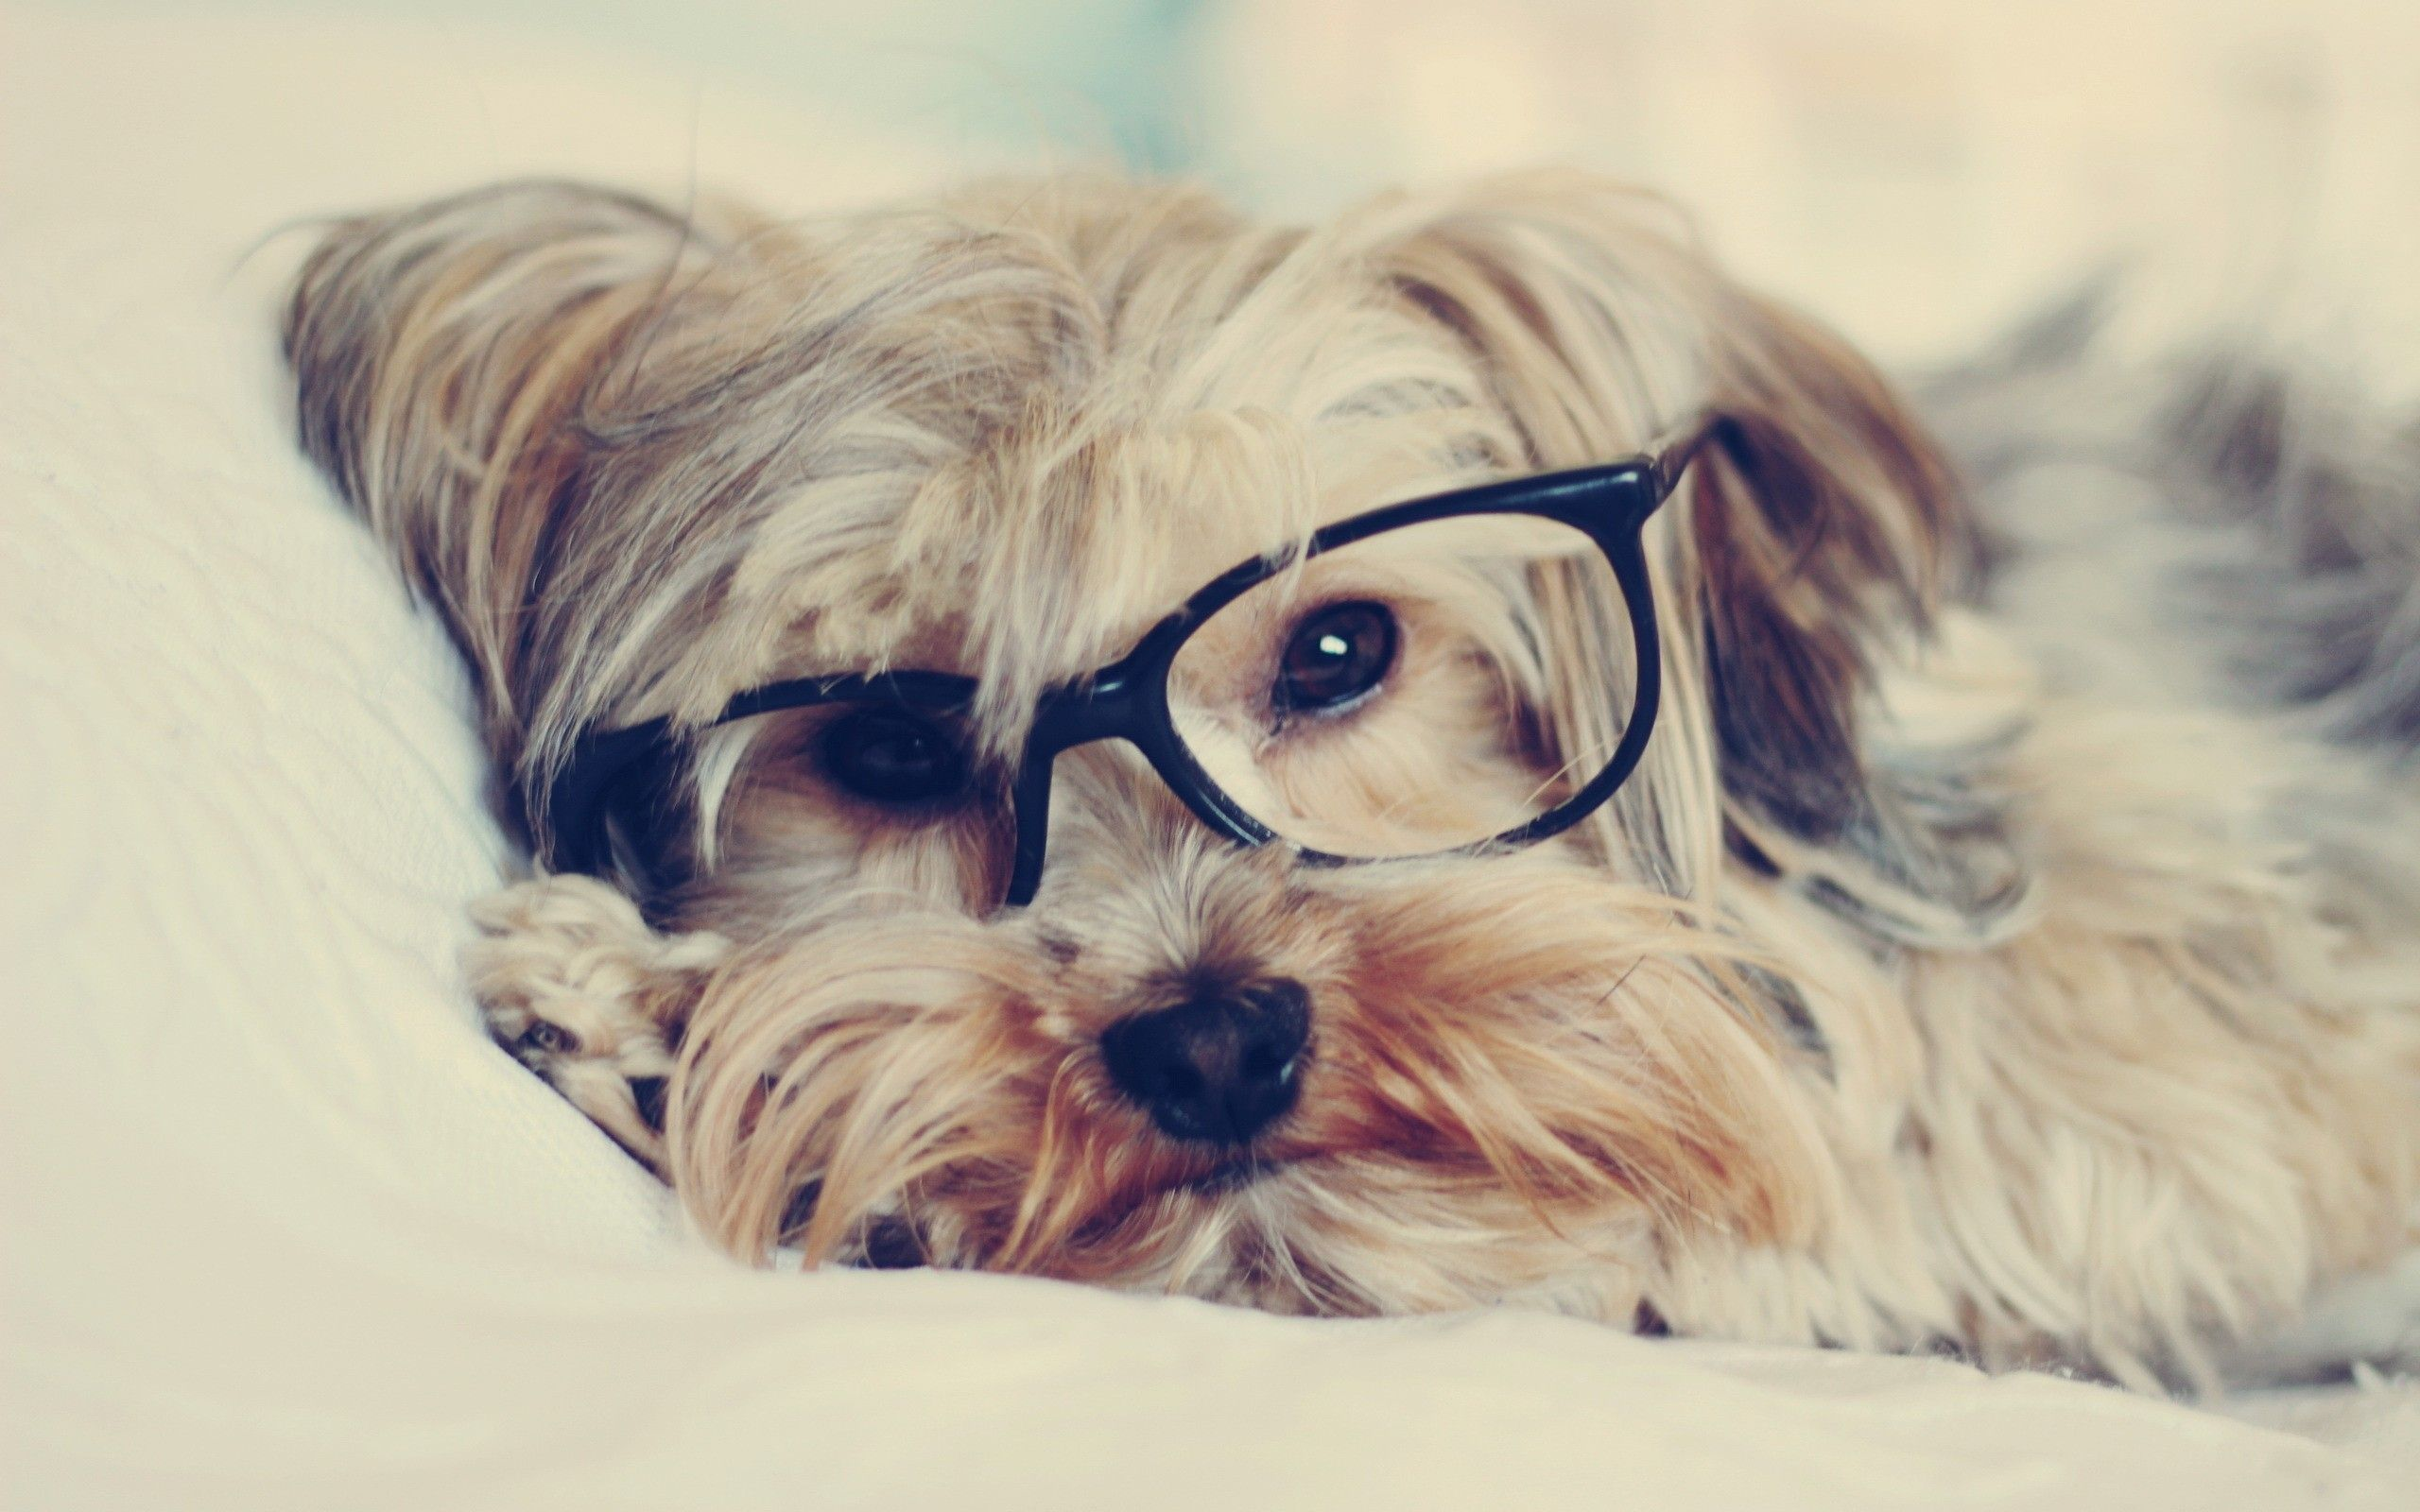 2560x1600 Dogs: Dogs Animals Puppies Hipster Glasses Wallpaper All for HD 16:9 ...